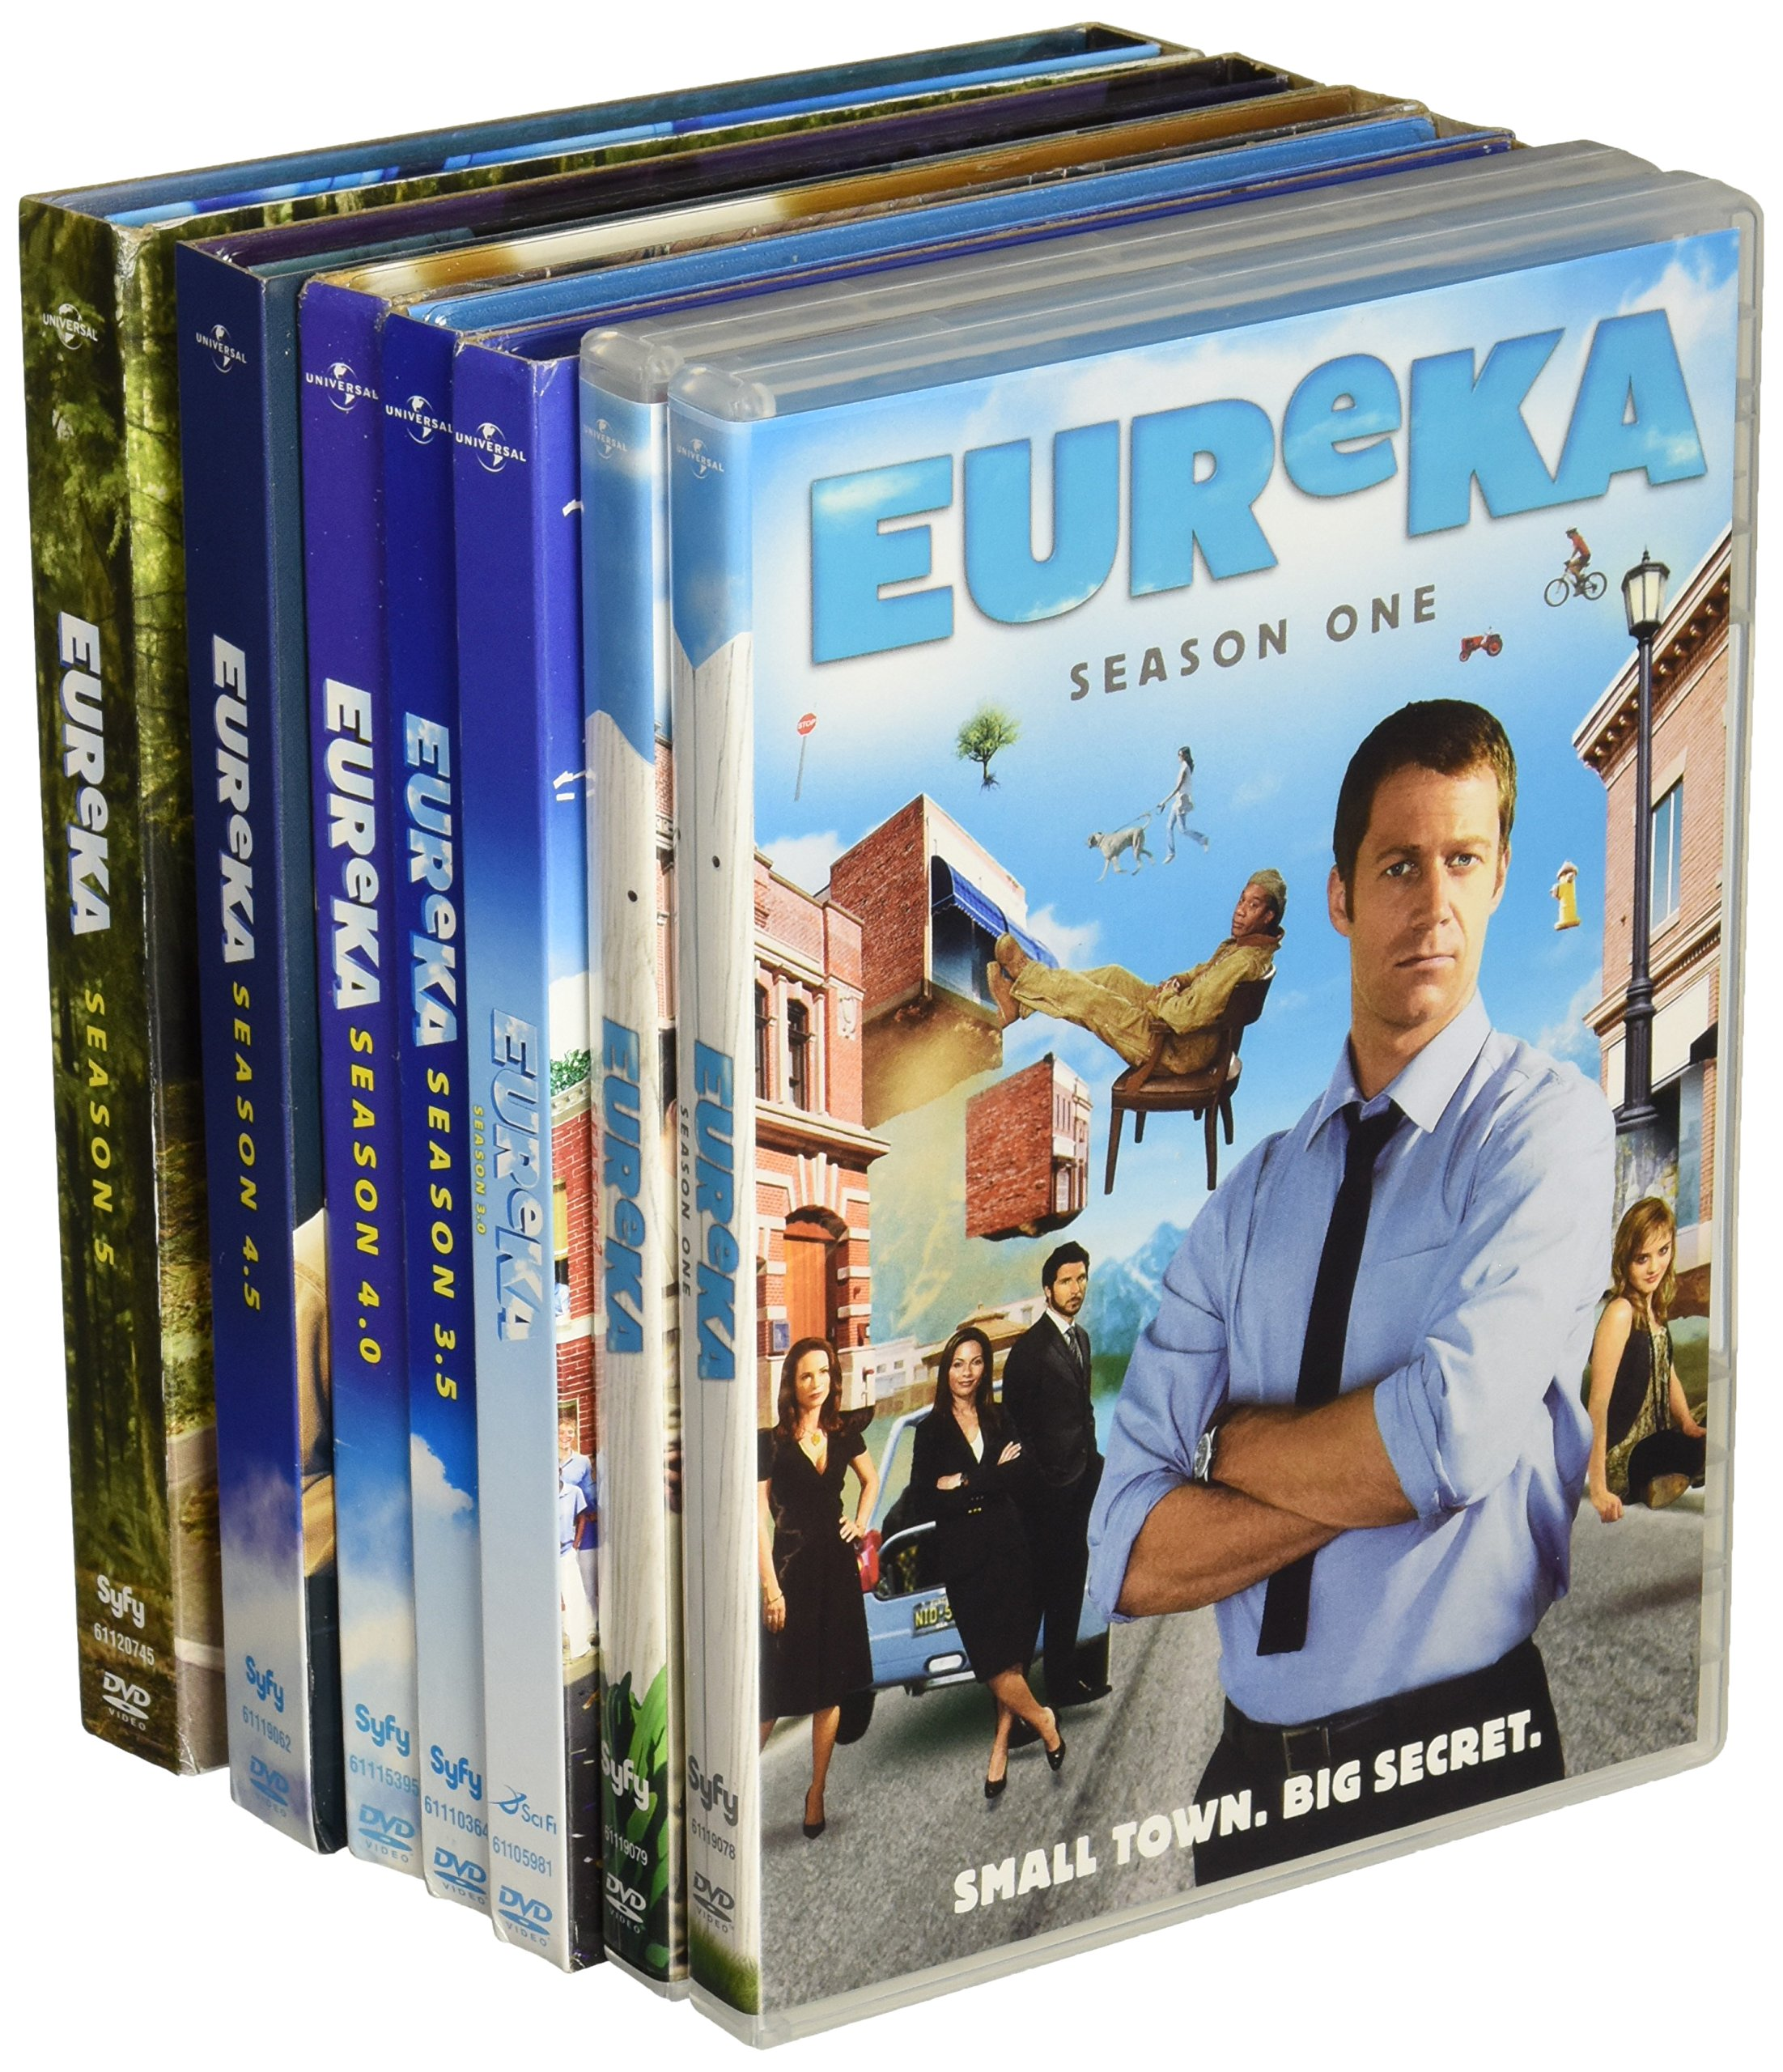 Eureka: The Complete Series (Amazon Exclusive) by Uni